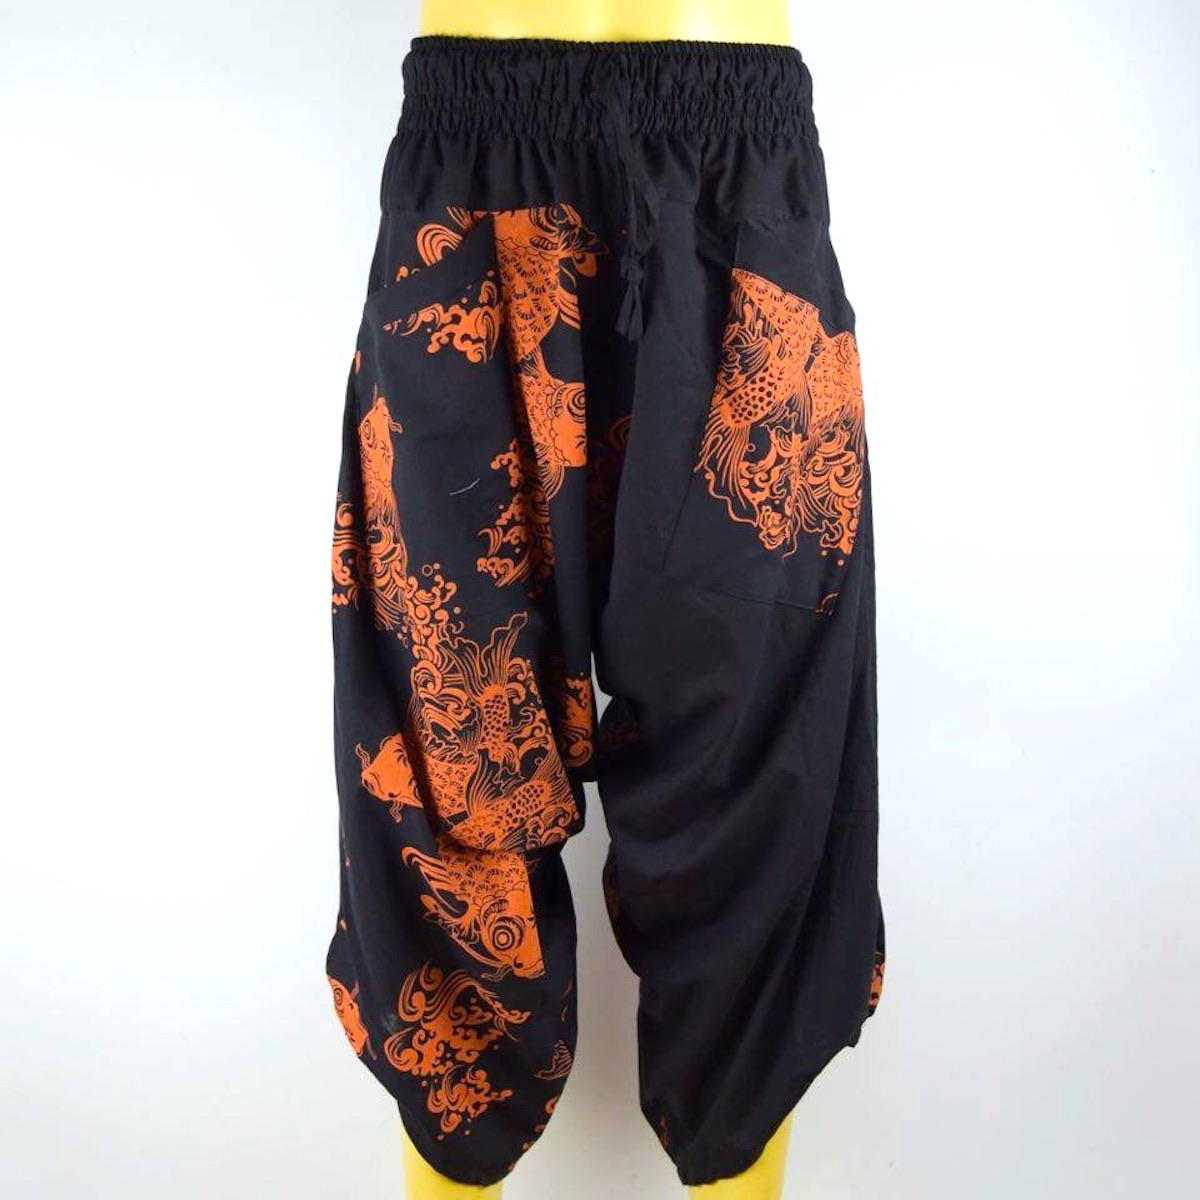 Pantalon YOGA unisex noir/orange motif carpe tissu fin